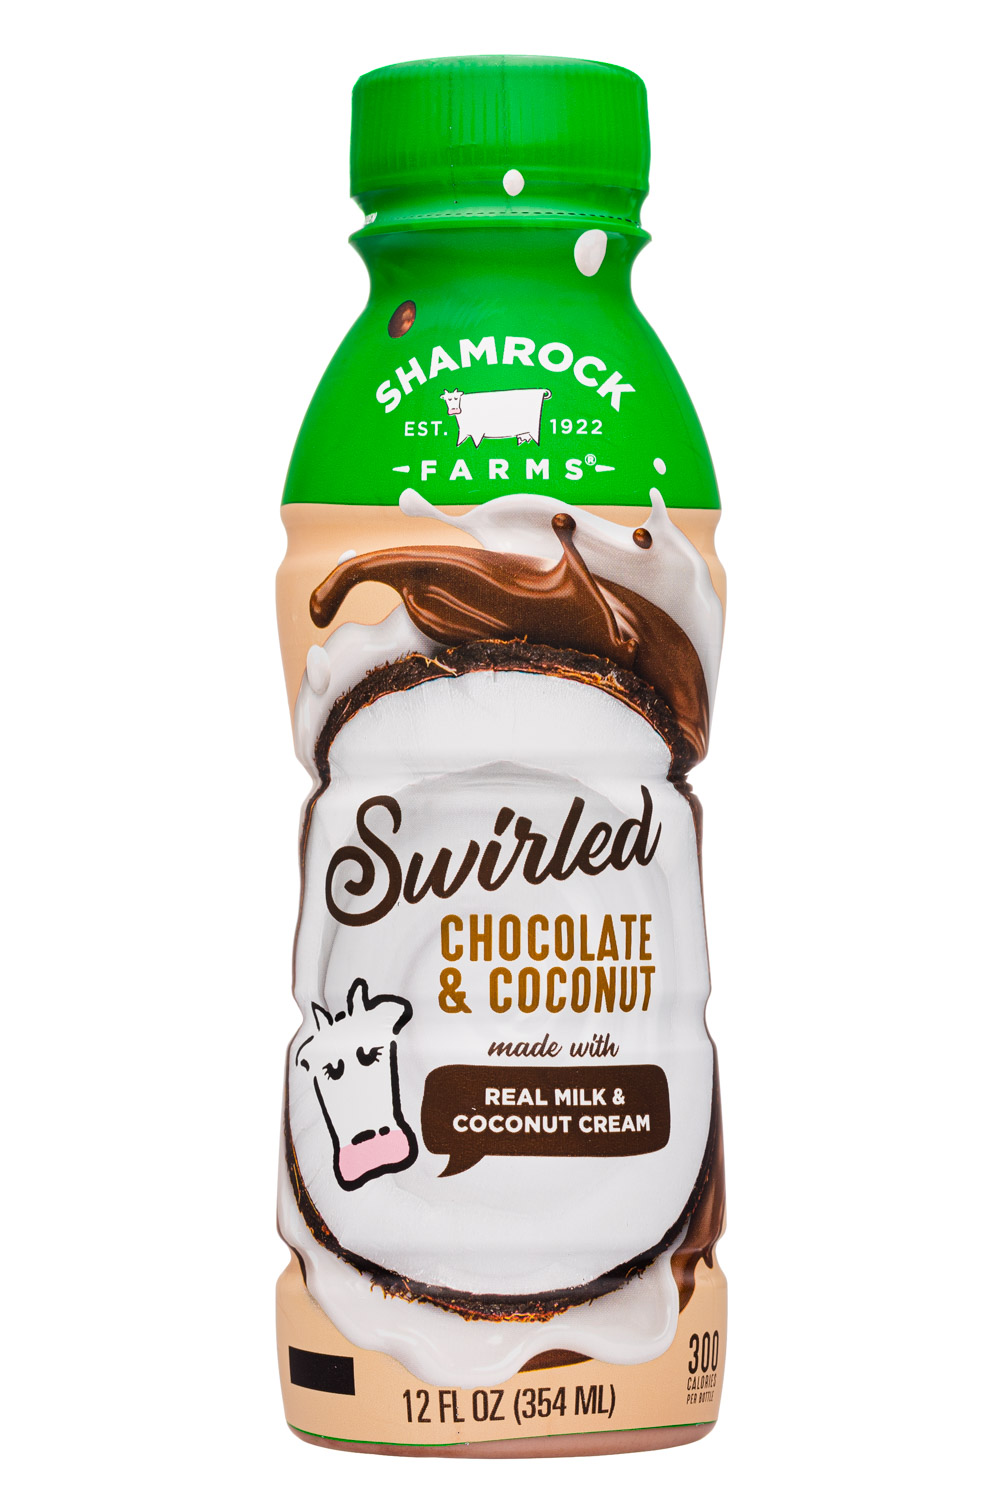 Swirled Chocolate & Coconut | Shamrock Farms | BevNET.com Product Review +  Ordering | BevNET.com